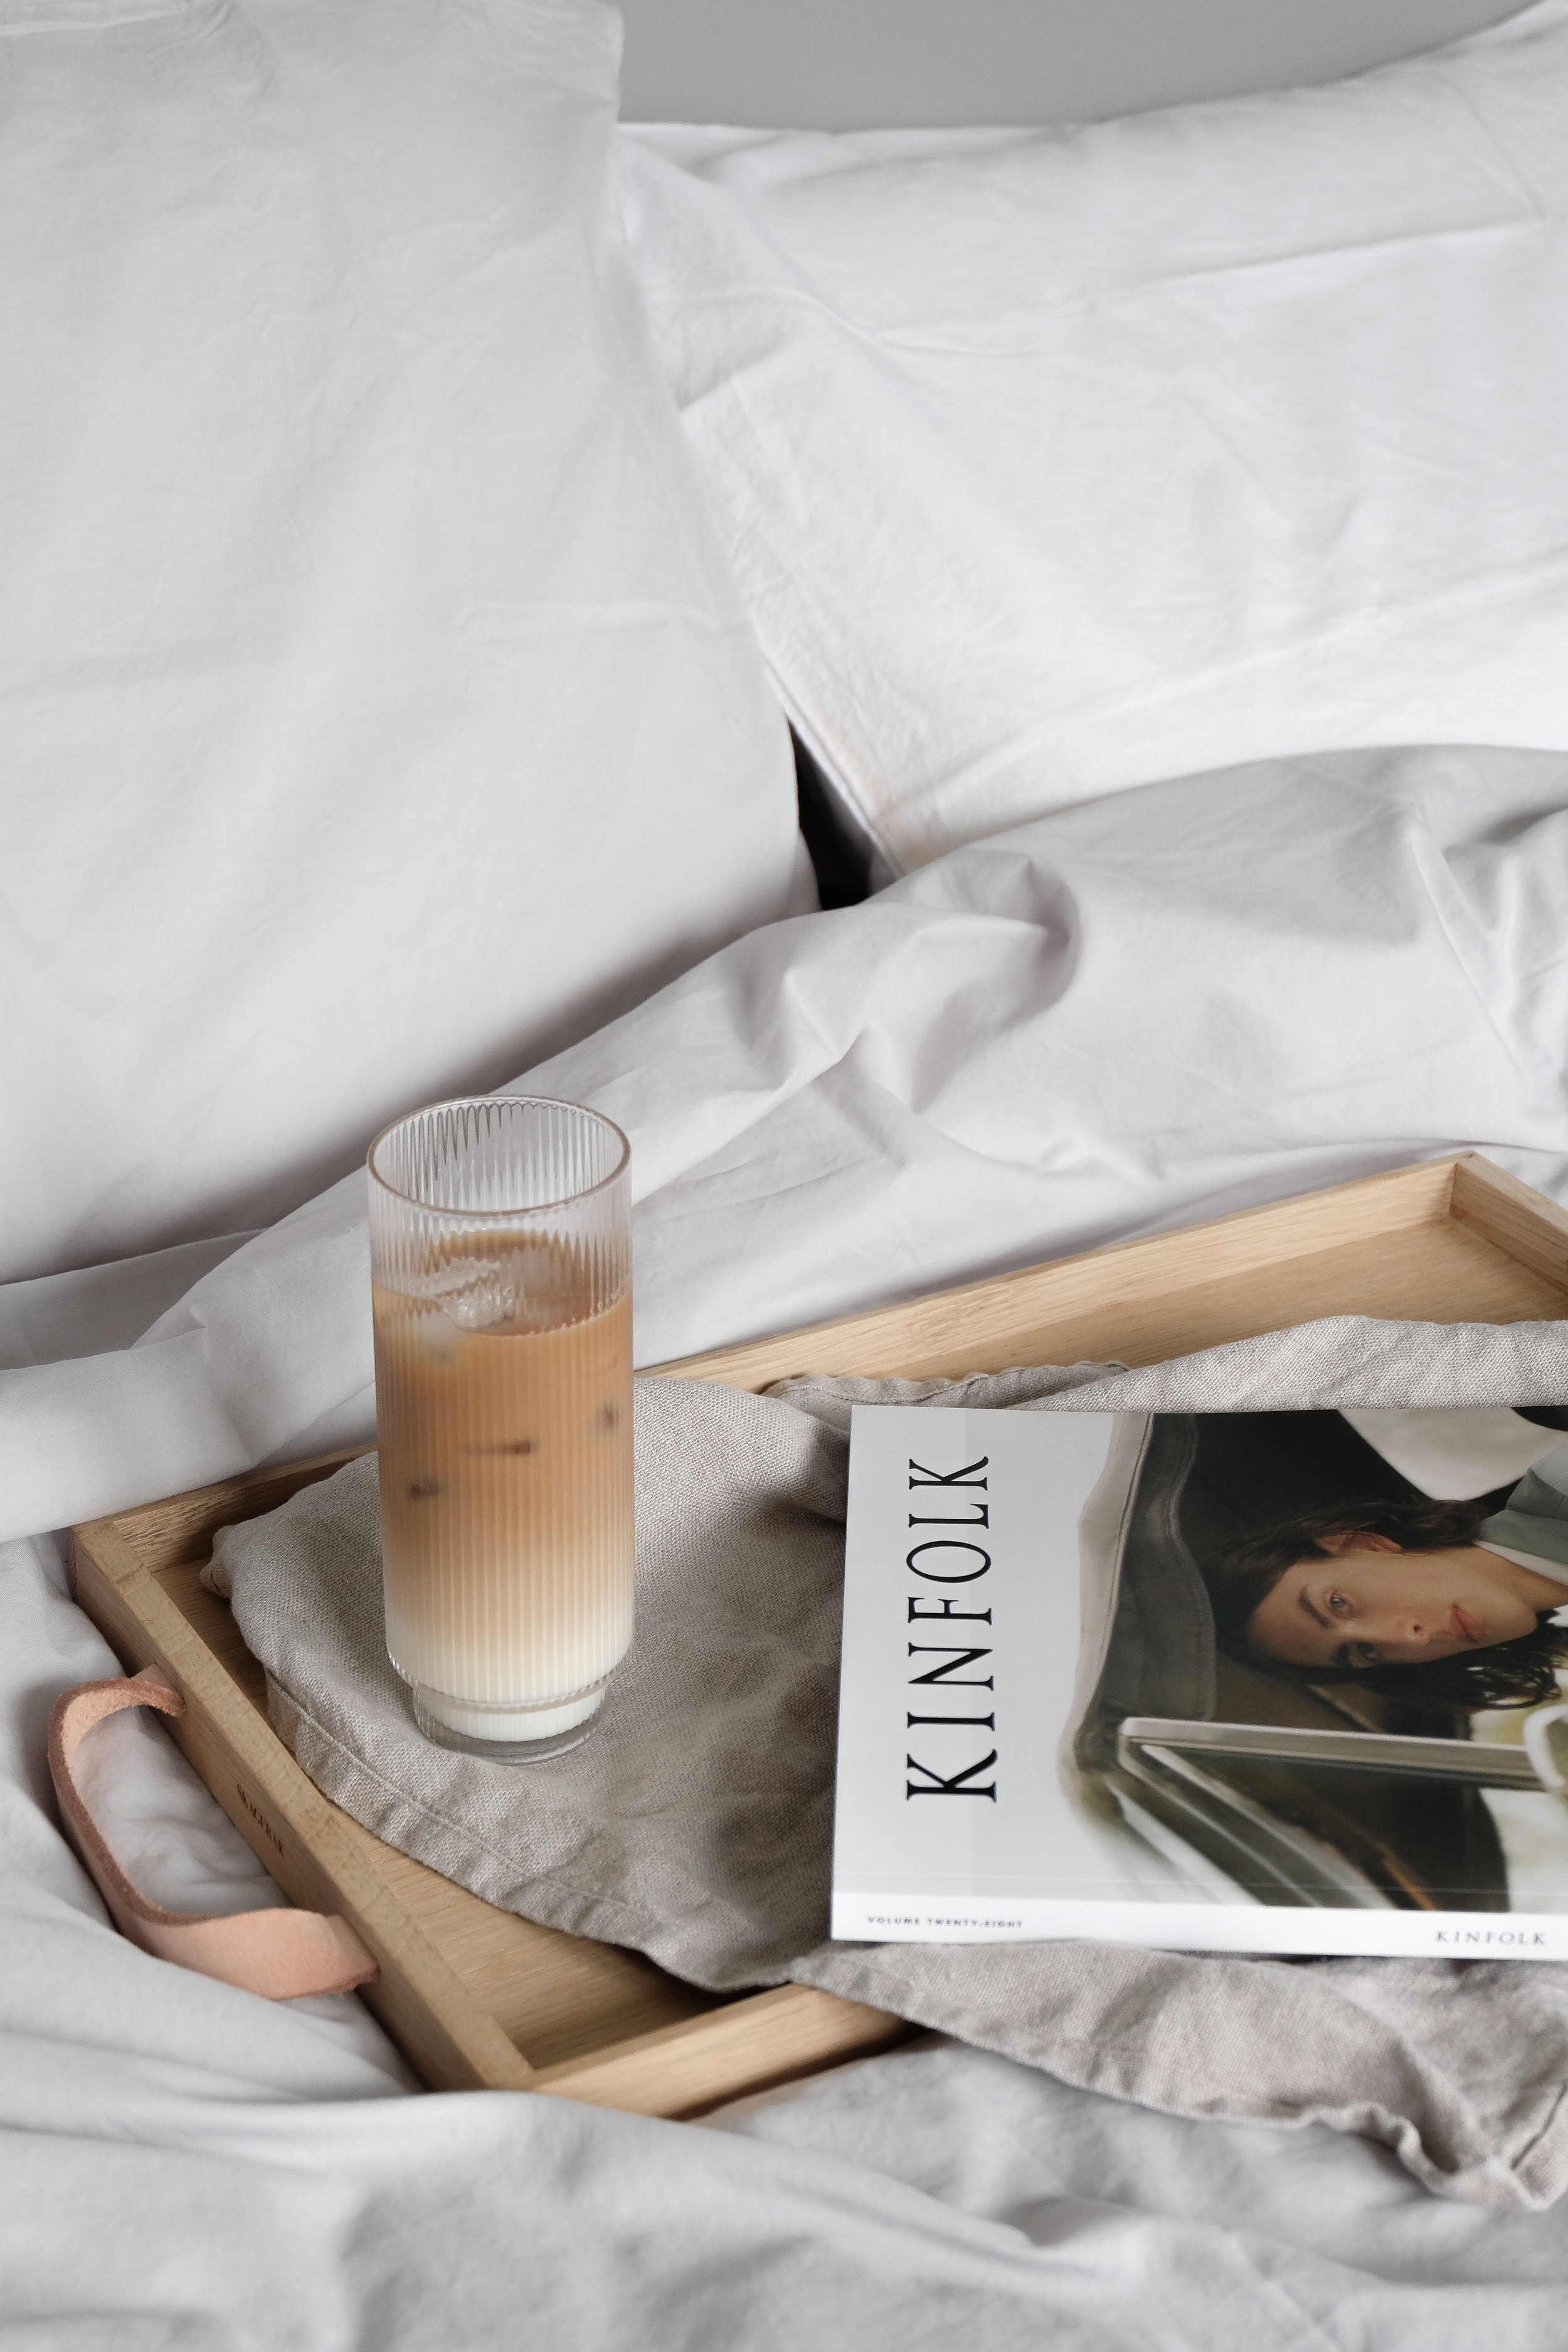 A perfect Sunday morning in bed with an iced coffee and the new Kinfolk